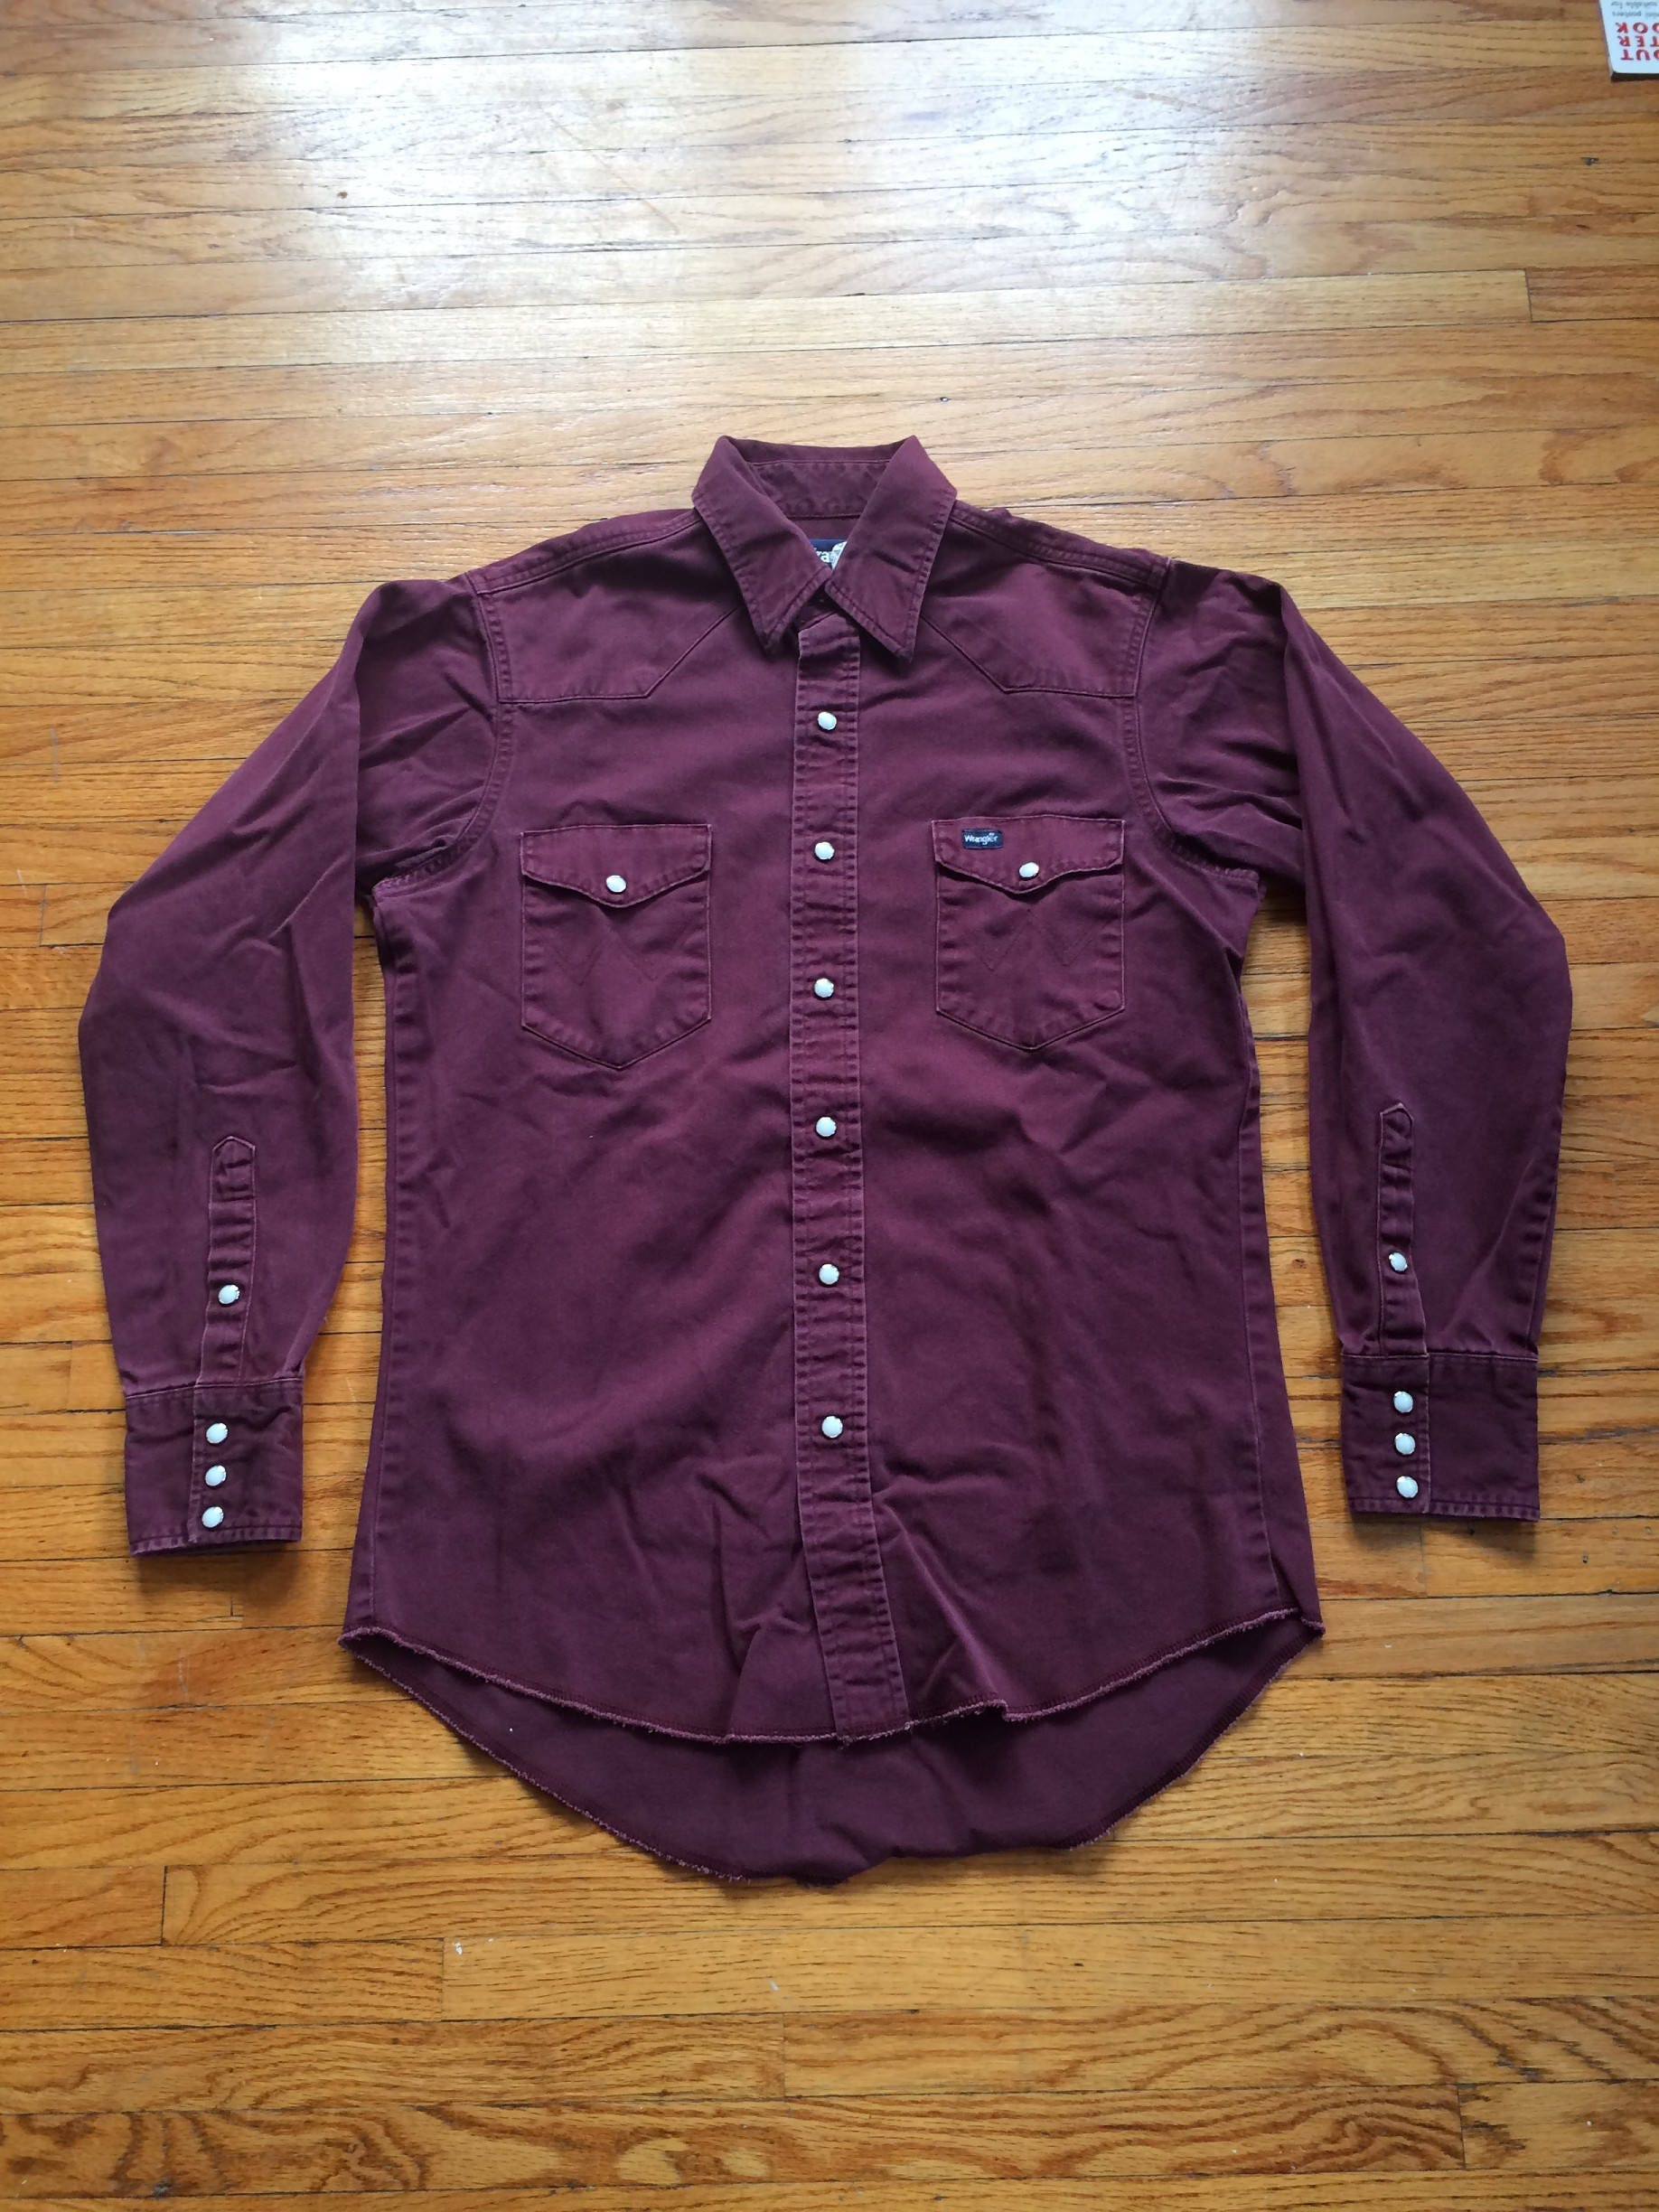 09f74cce460 Vintage Western Shirt Pearl Snaps - BCD Tofu House